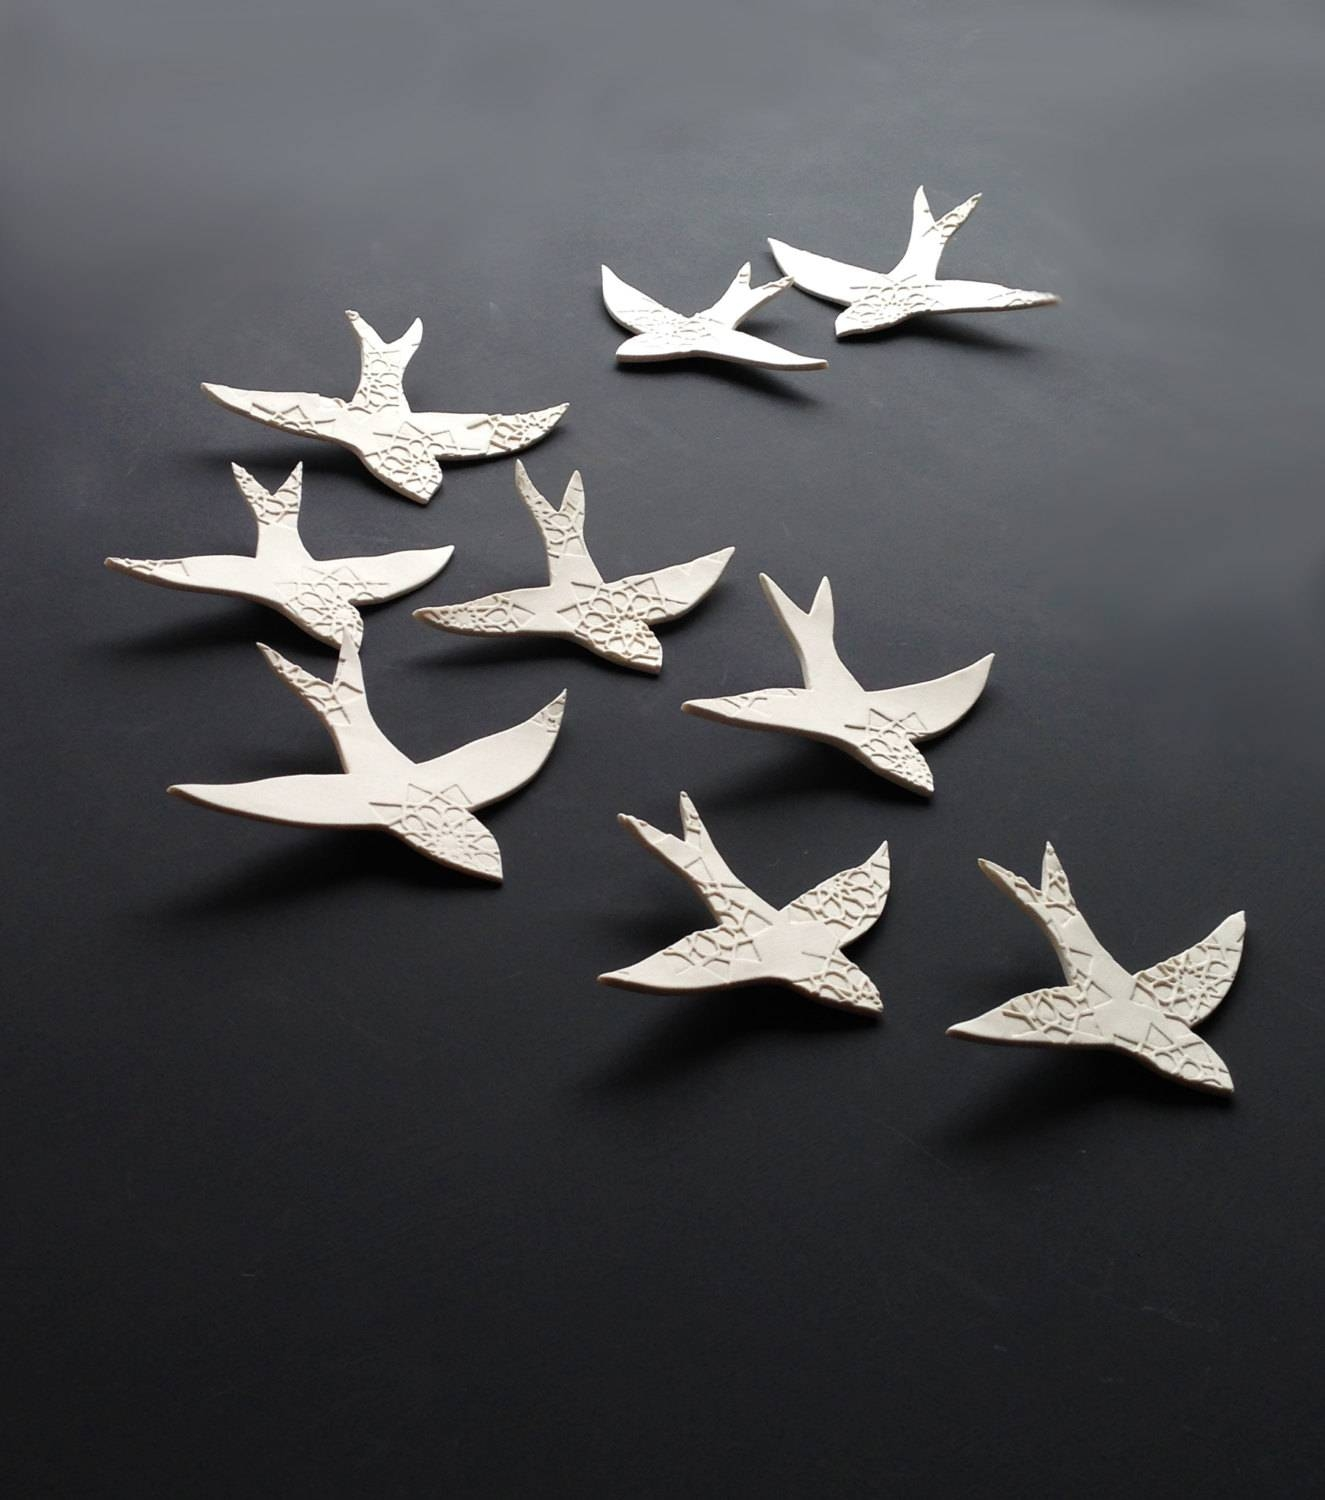 Porcelain 3d Large Wall Art Set Swallows Over Morocco 9 Birds Pertaining To Most Current Birds In Flight Metal Wall Art (View 11 of 30)